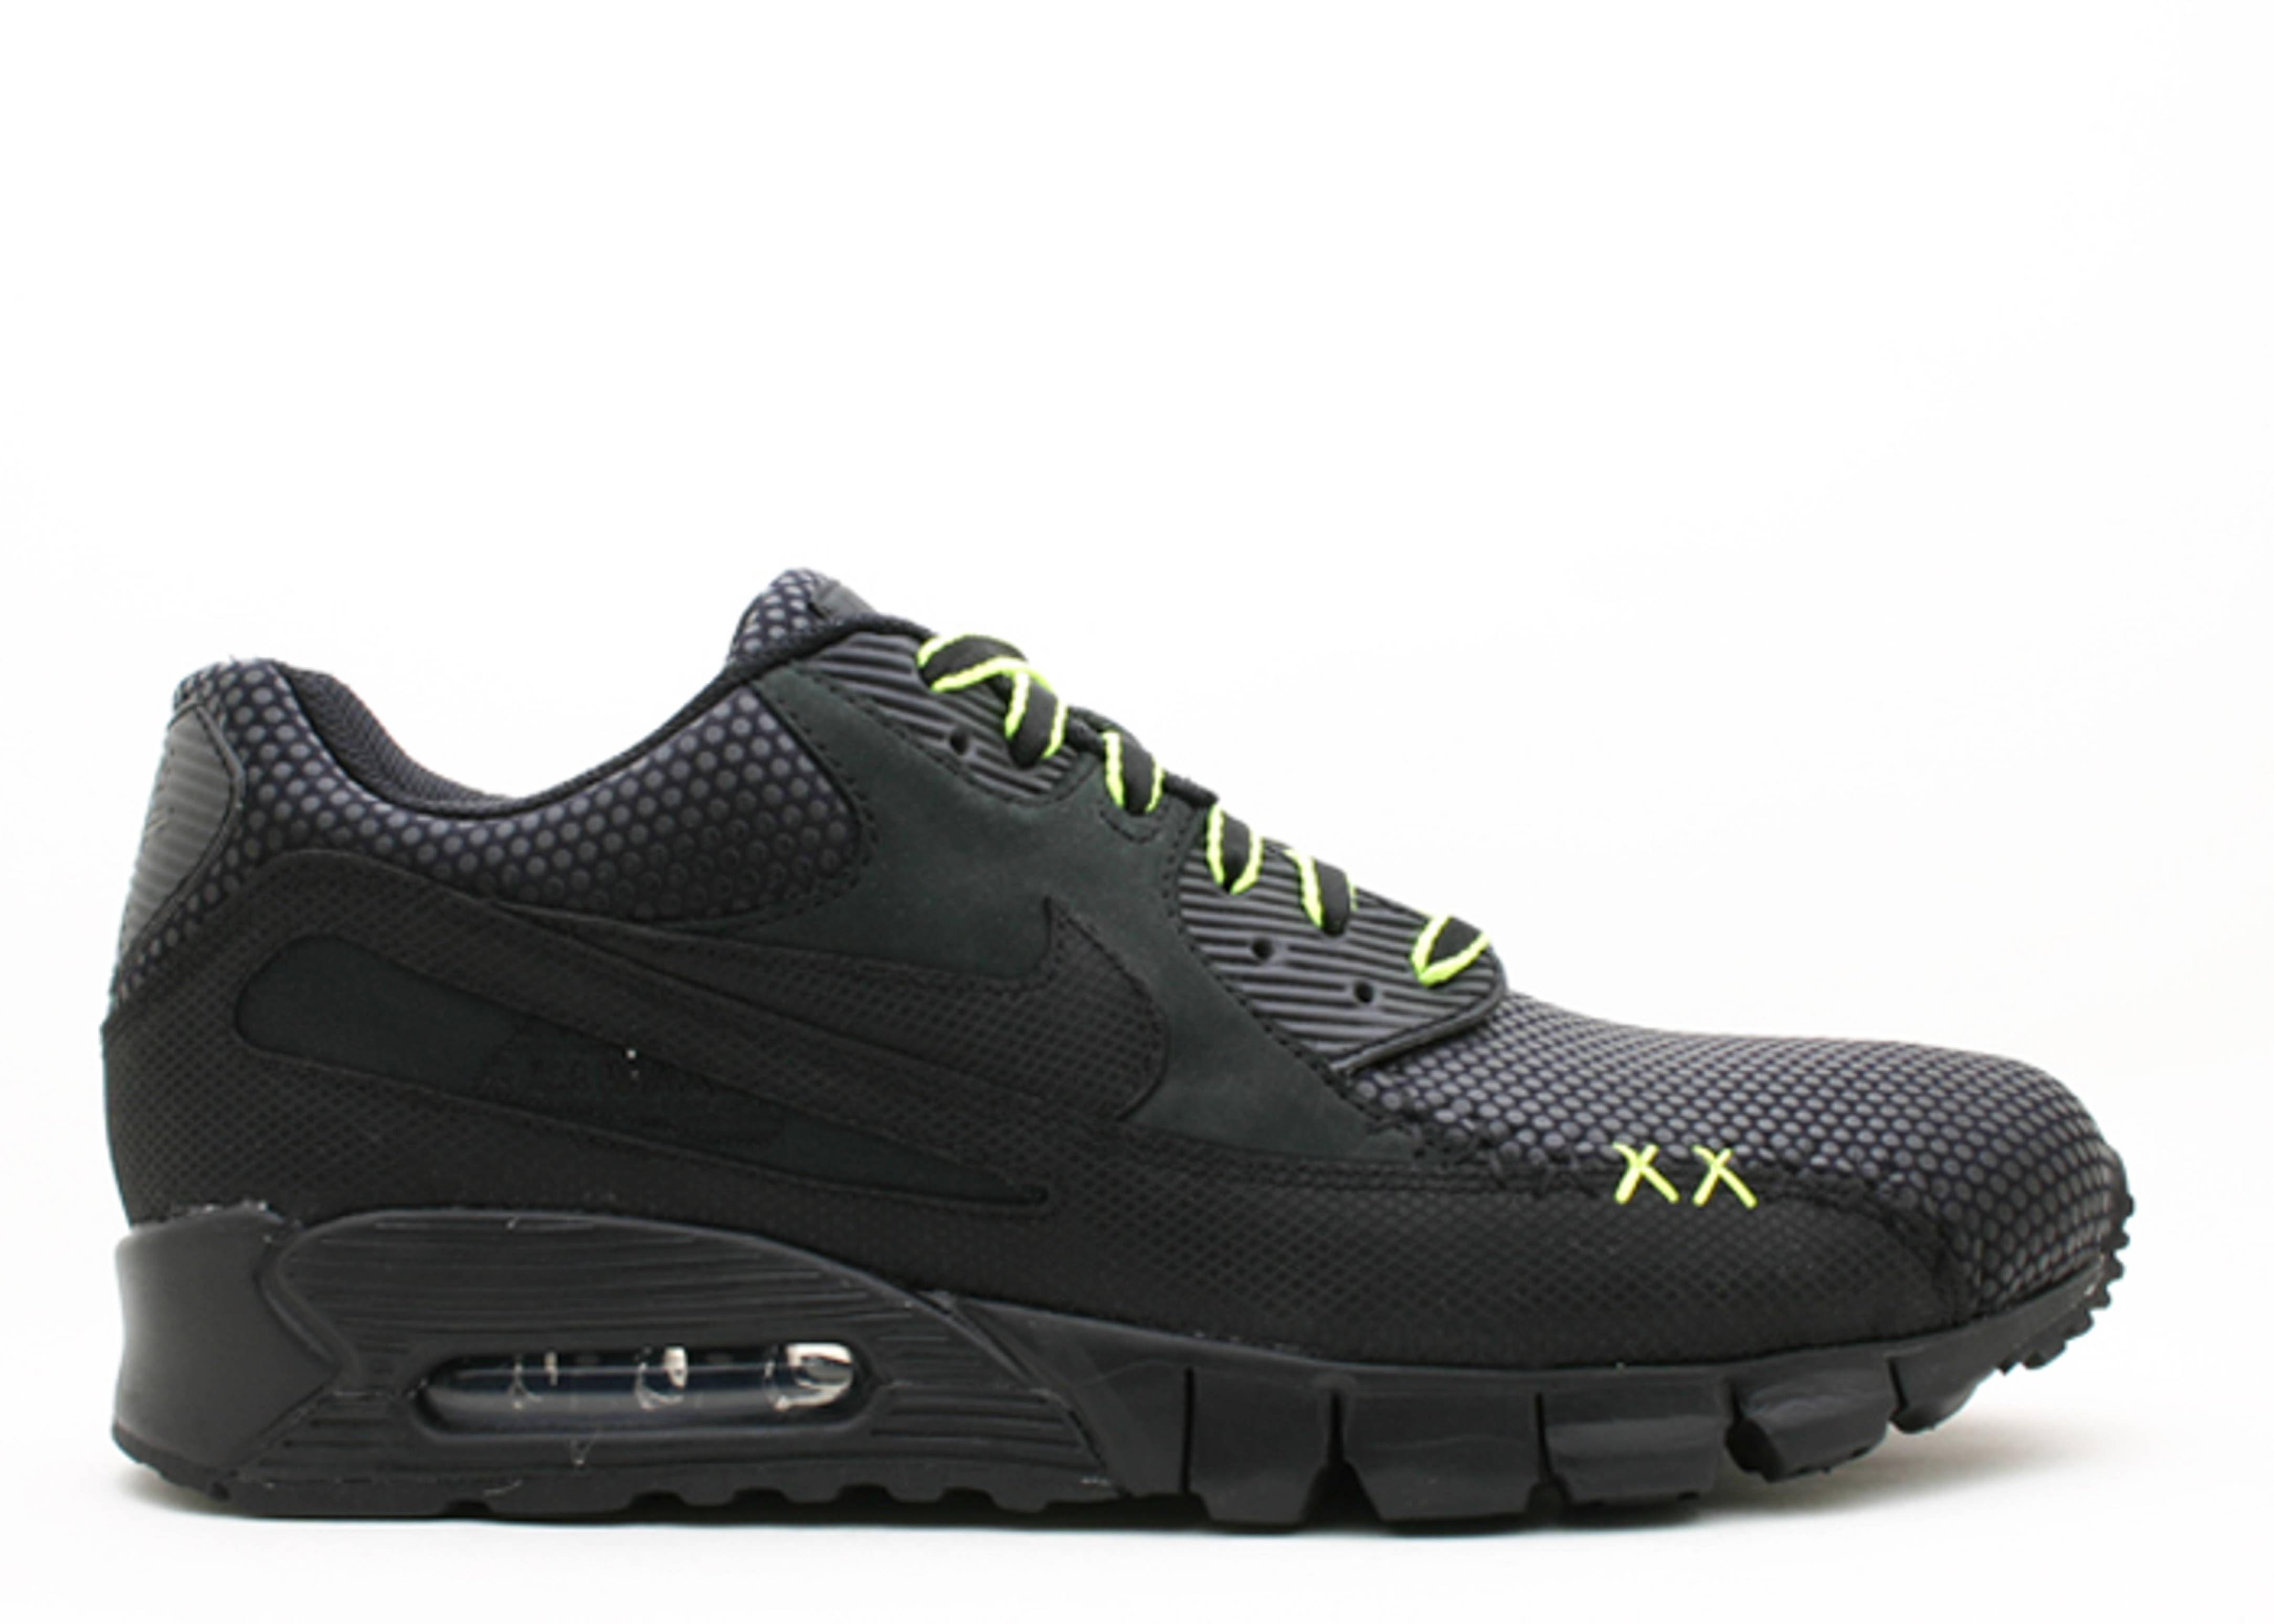 new products c9eeb 29c1c ... Nike Air Max 90 Current Kaws Black Volt  Air Max 90 Current Premium ...